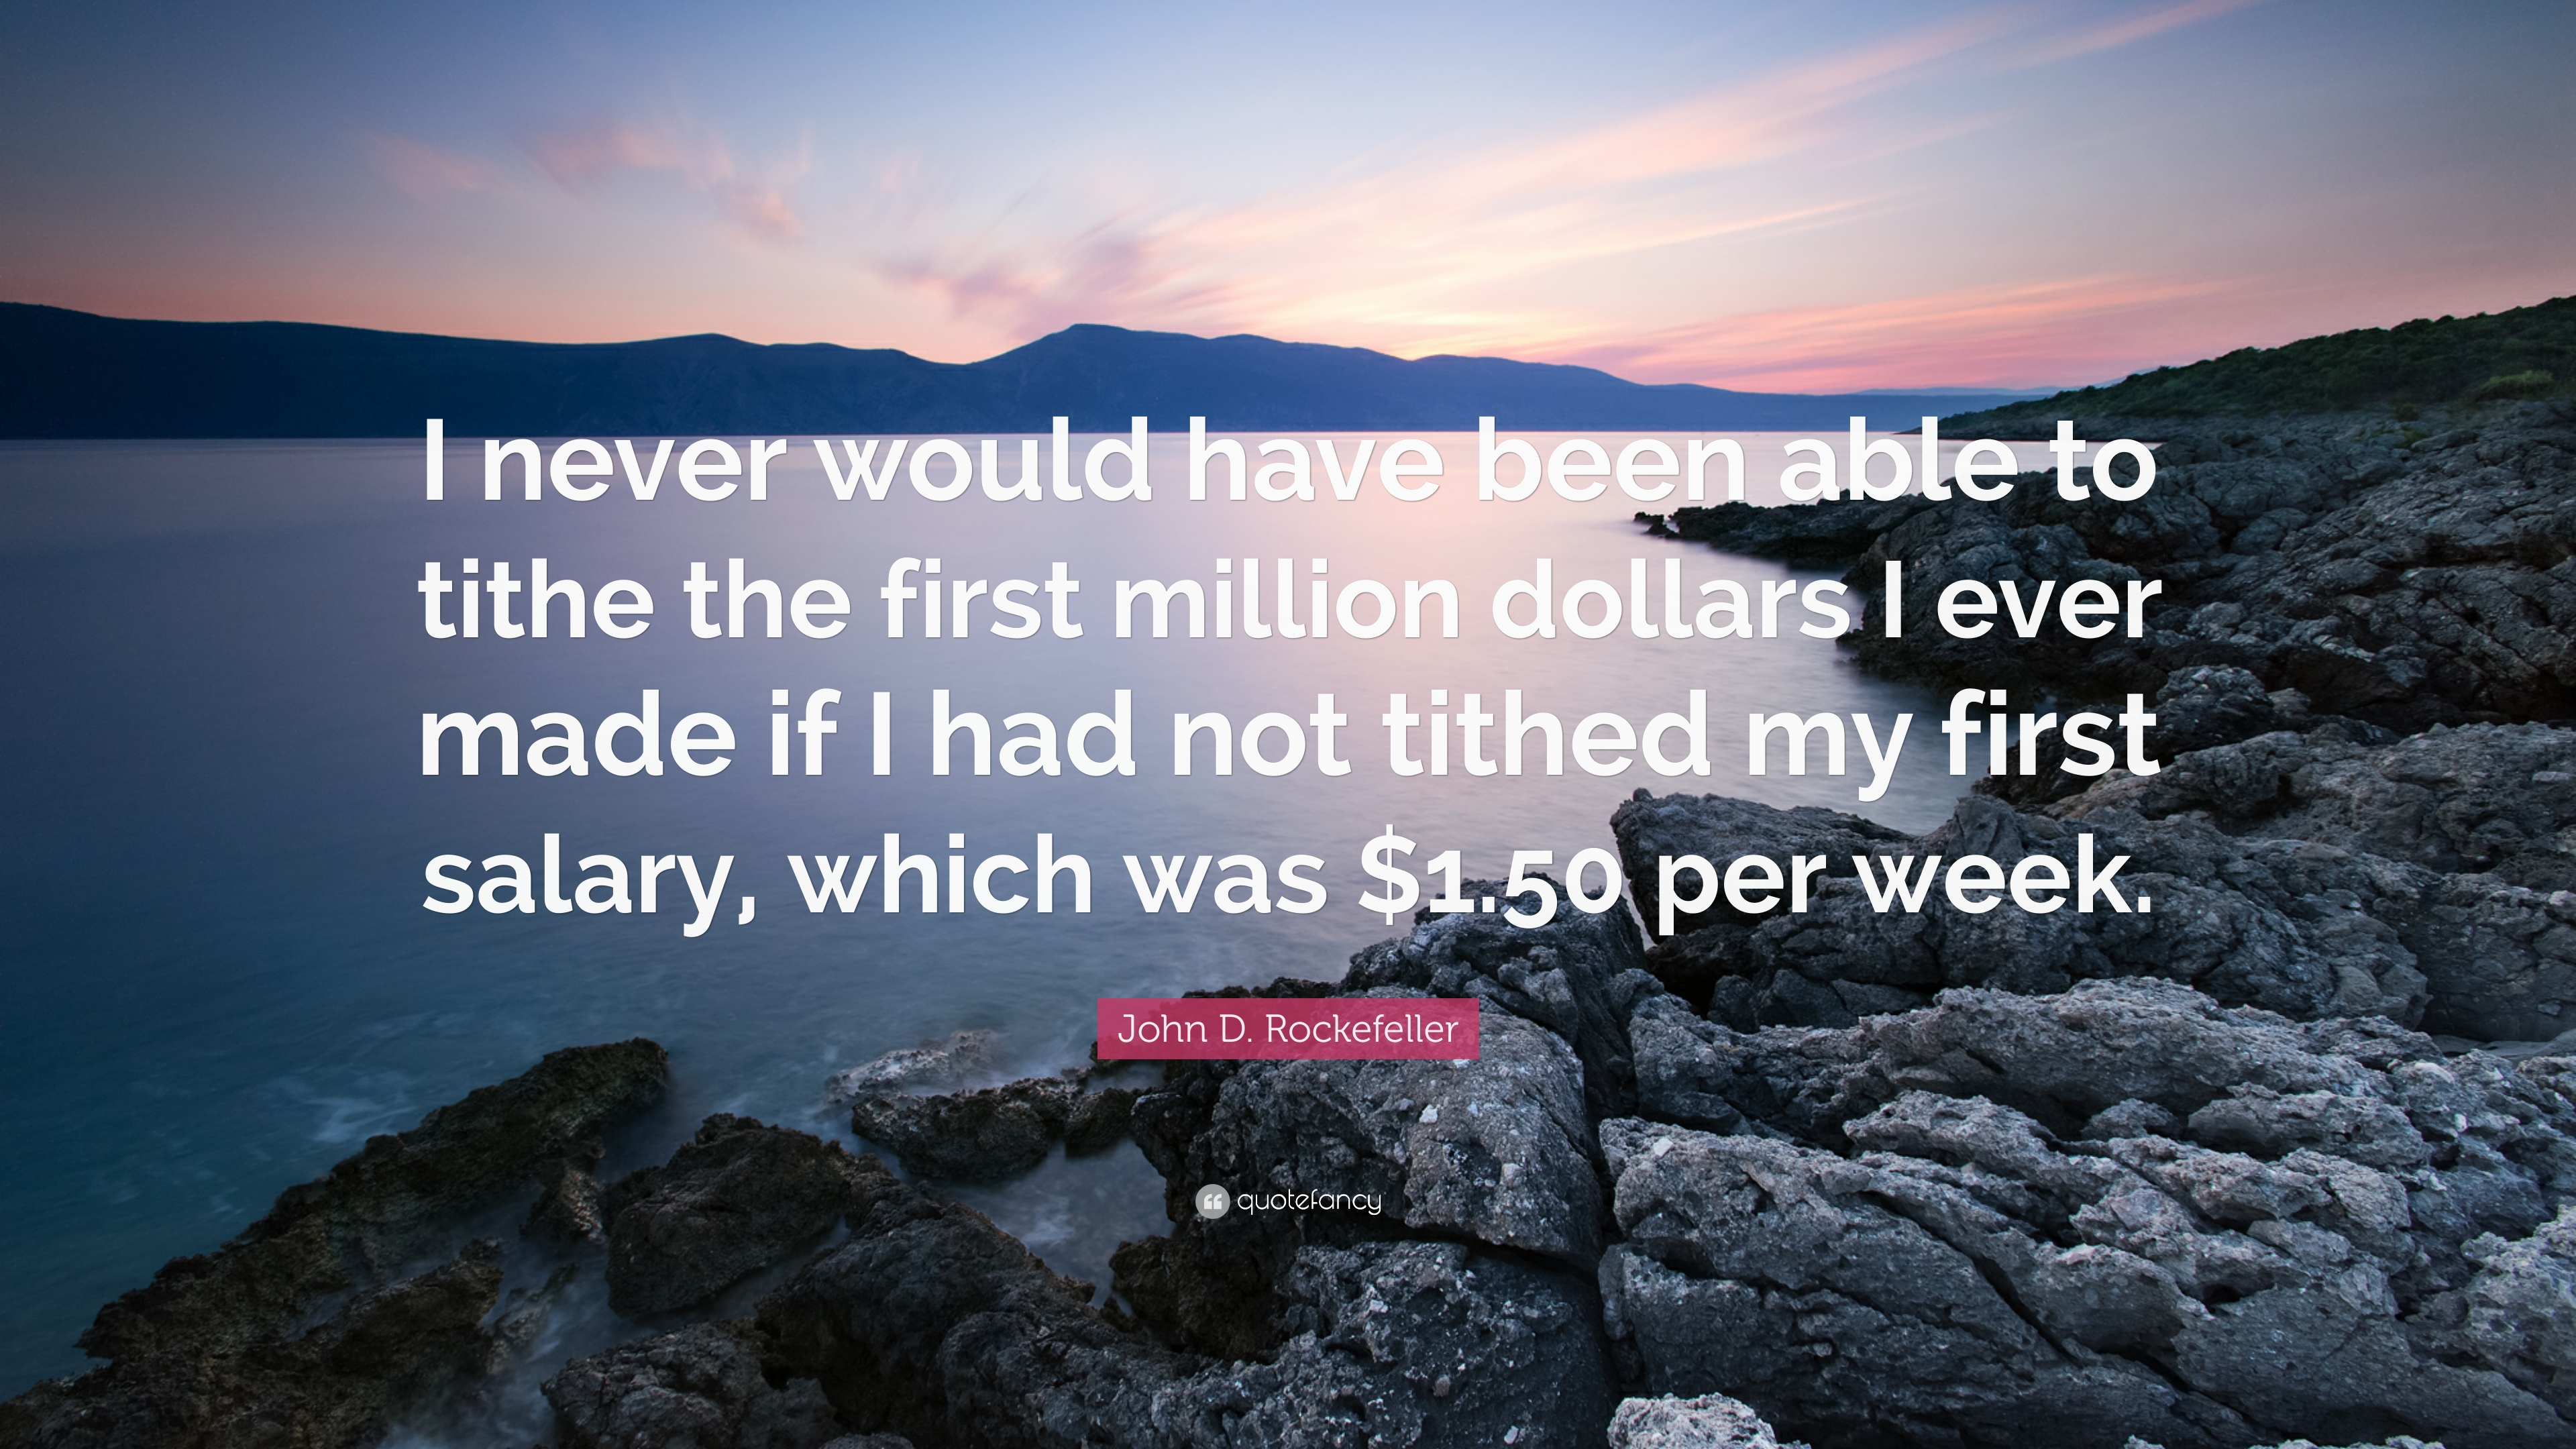 """john d rockefeller first million John d rockefeller quote: """"i never would have been able to tithe the first million dollars i ever made if i had not tithed my first salary, which was $150 per."""